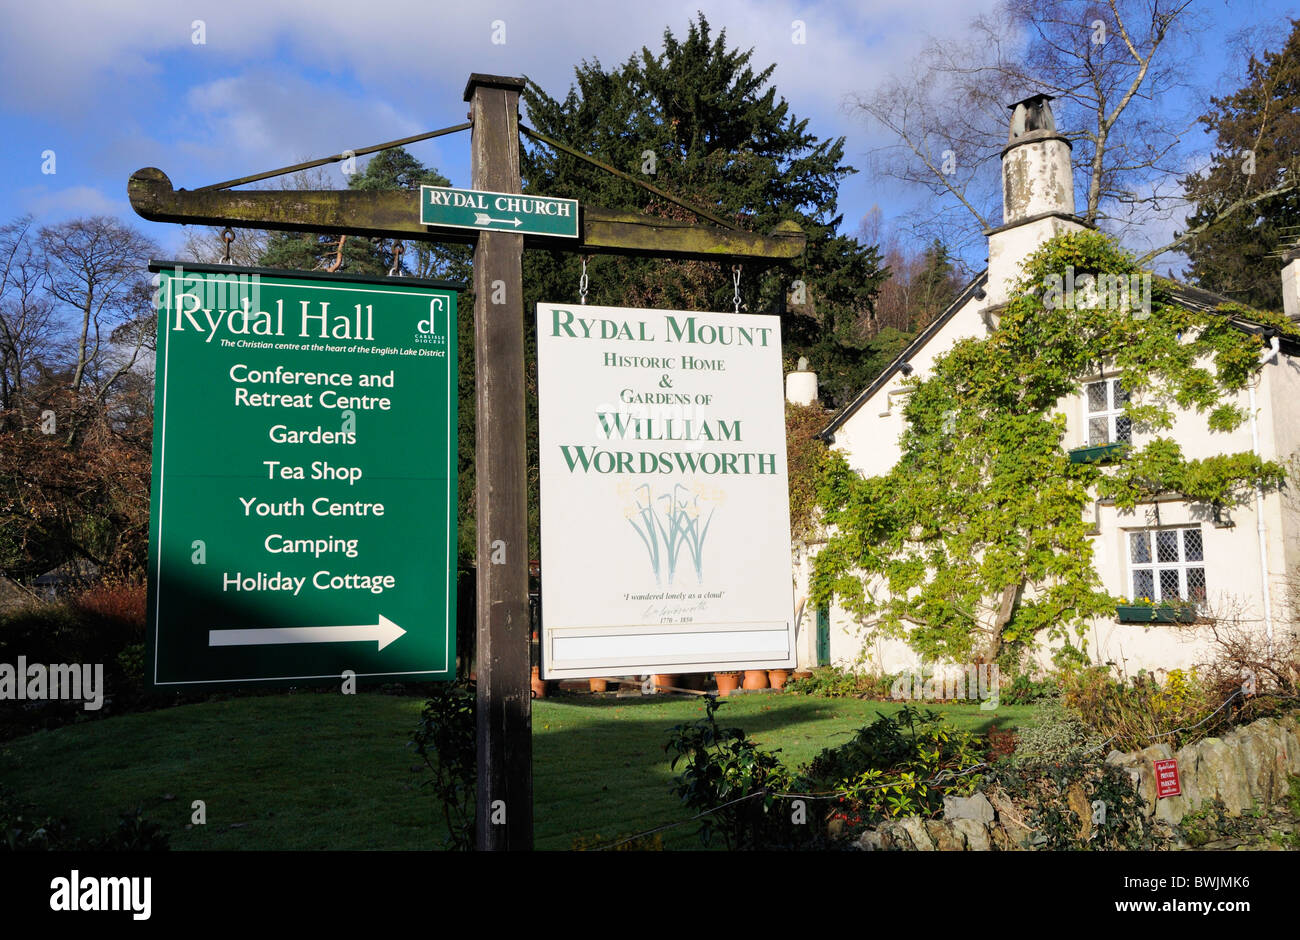 Sign to Rydal Hall and Rydal Mount, Lake District - Stock Image